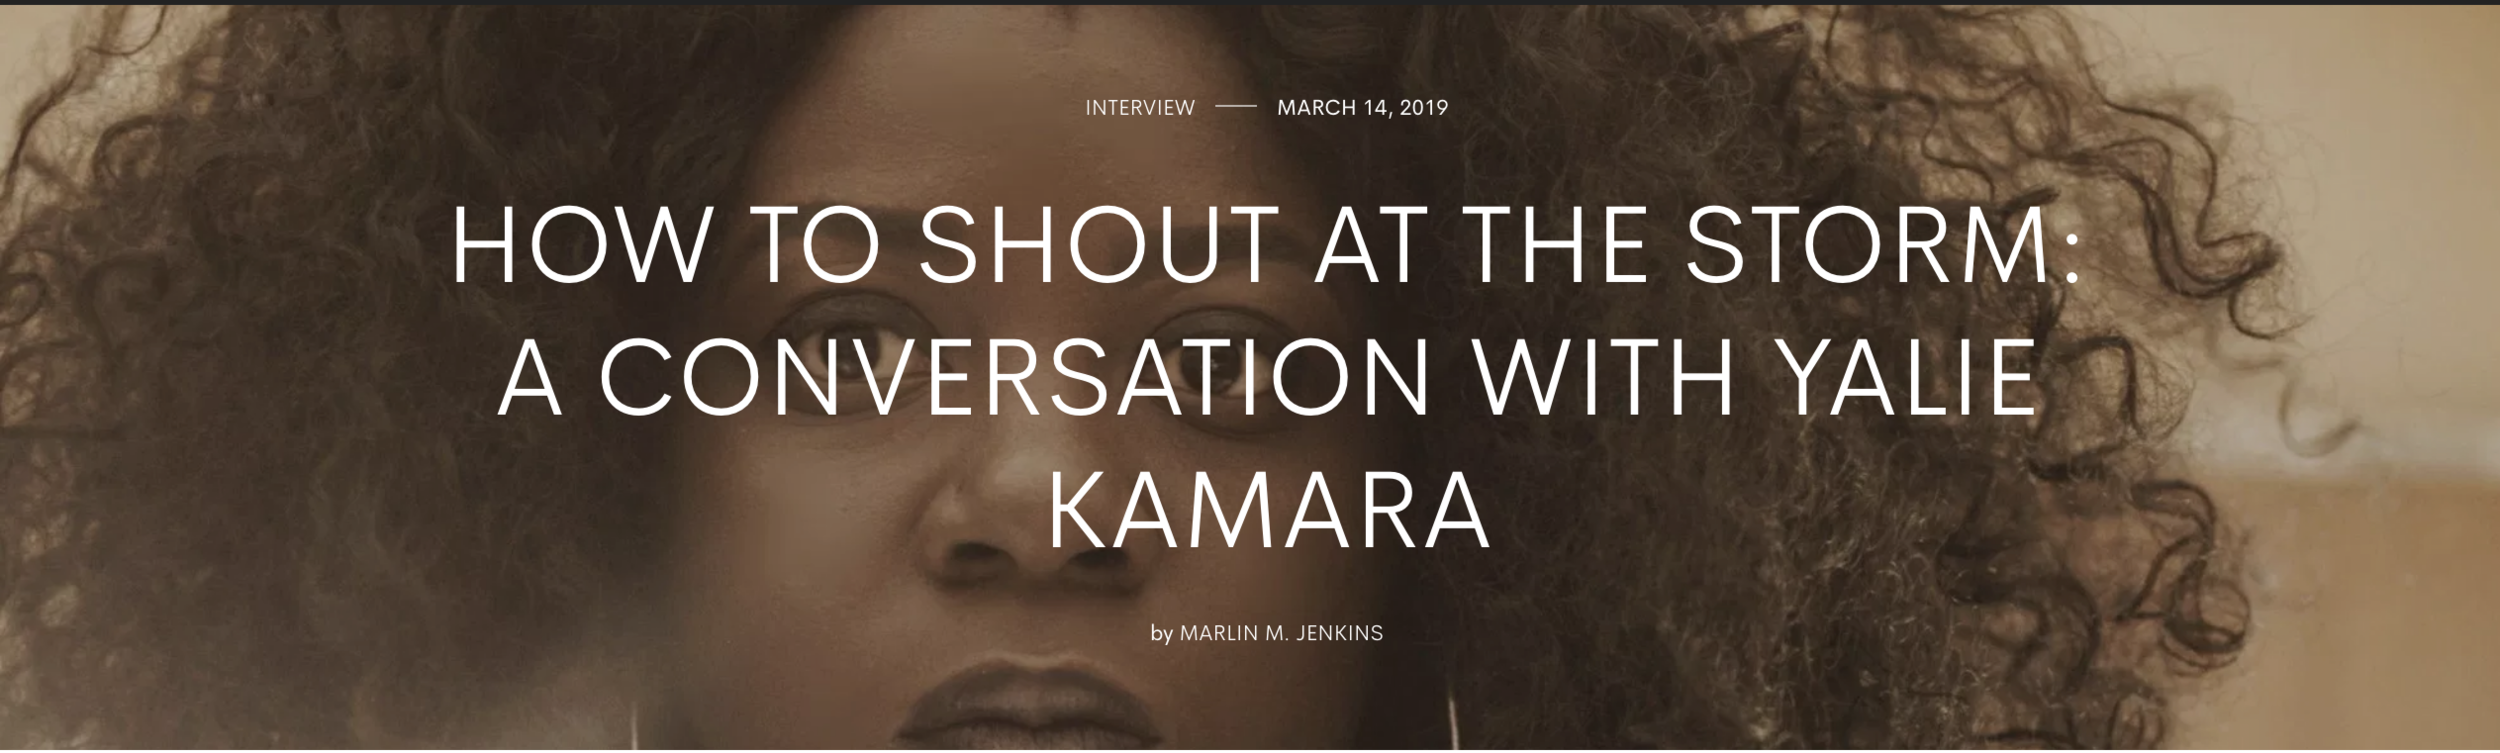 How to Shout at the Storm: A Conversation with Yalie Kamara,   The Adroit Journal, March 14, 2019